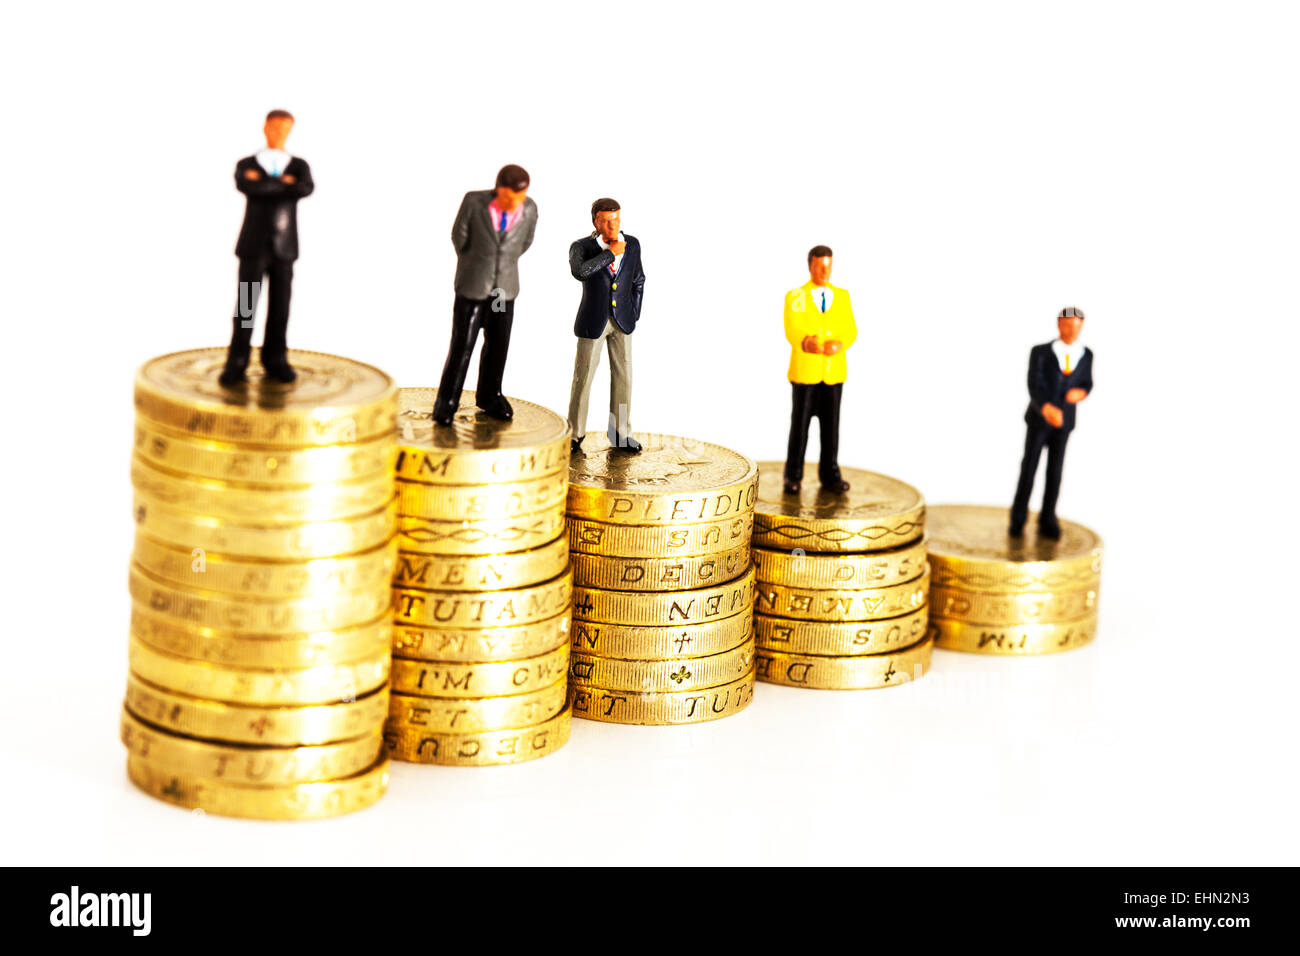 wealth scale of pay salary wages income in business isolated cut out cutout white background fat cats earners earning - Stock Image